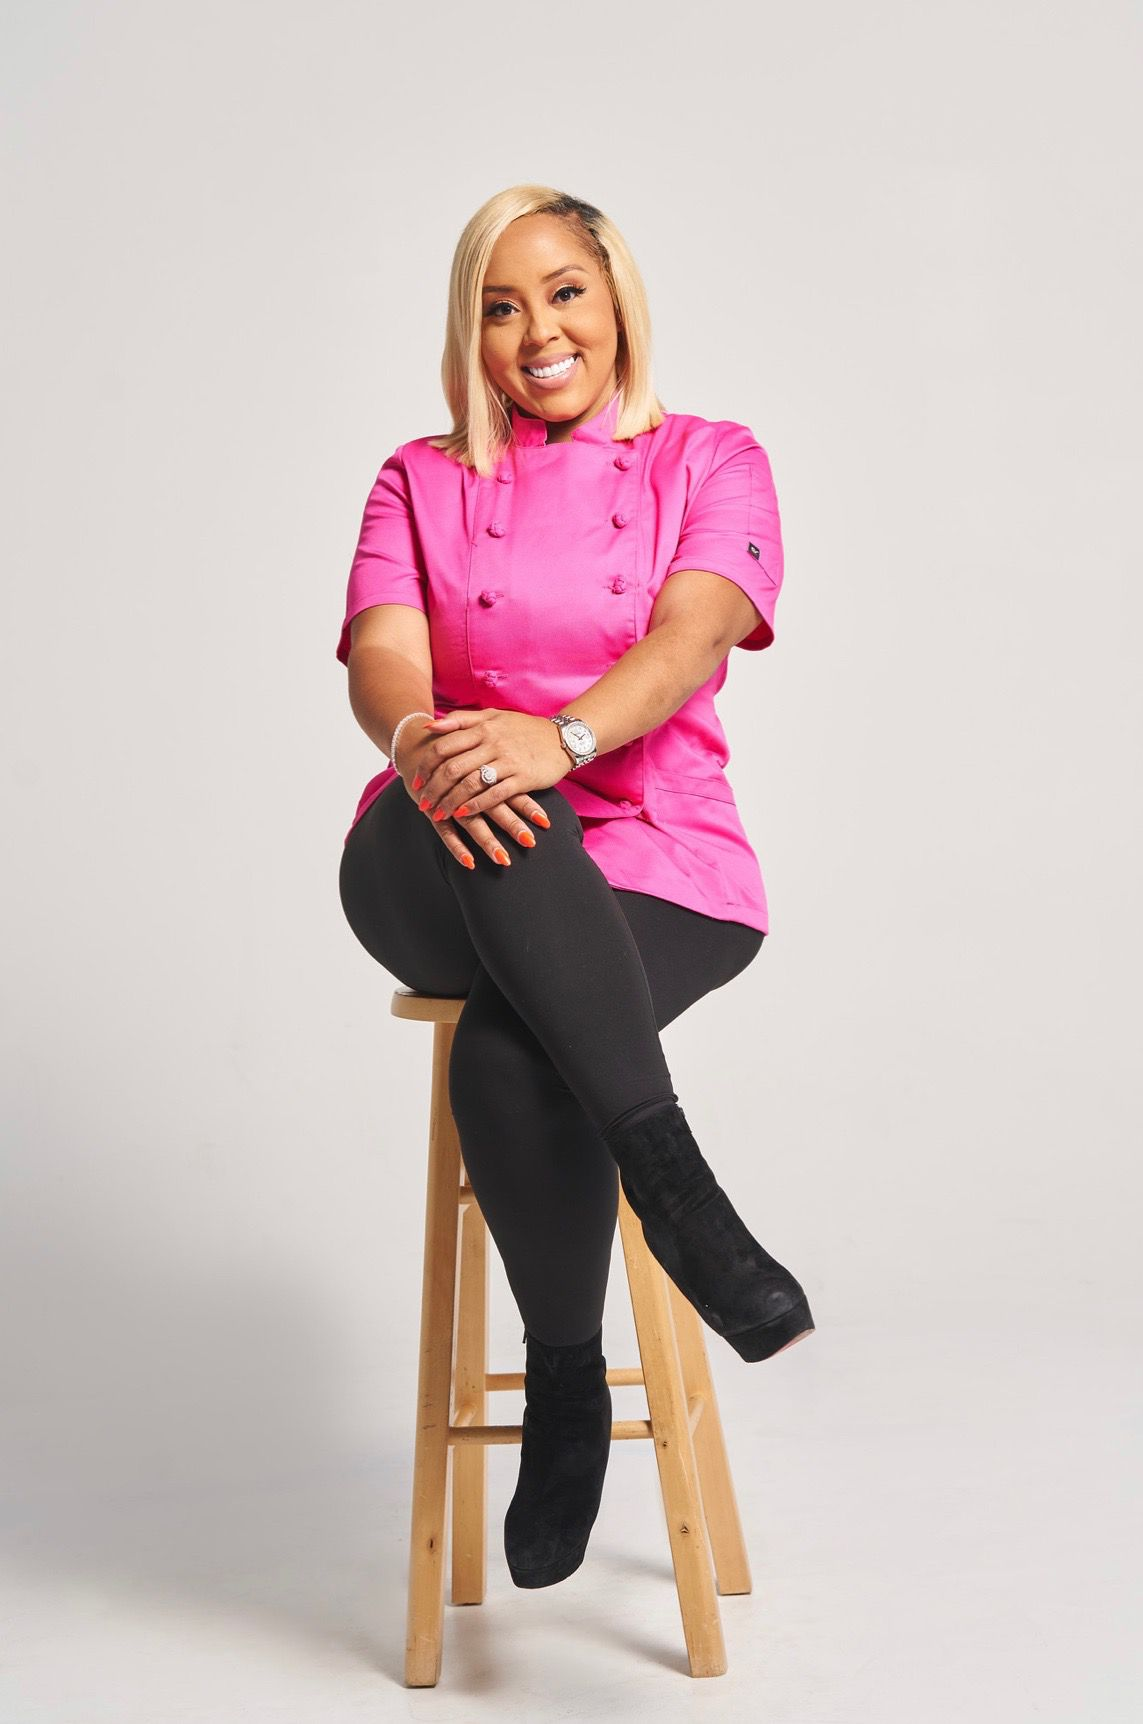 A smiling woman in a pink chef's coat sits on a stool